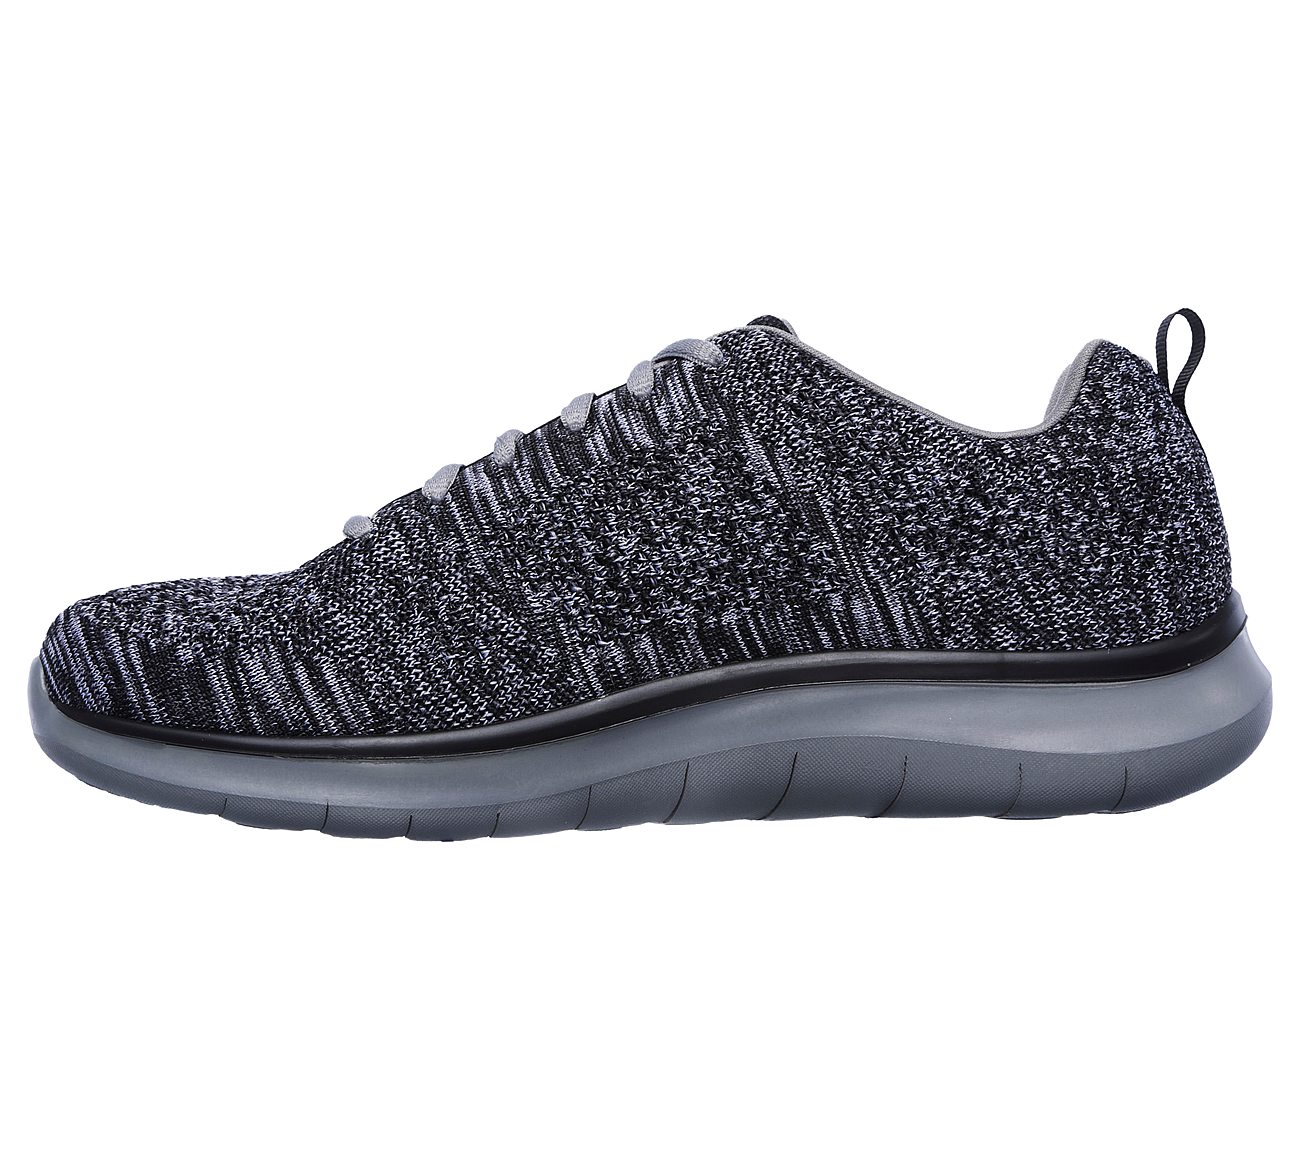 2e2e42331723 Buy SKECHERS Relaxed Fit  Quantum Flex - Smyzer Relaxed Fit Shoes ...